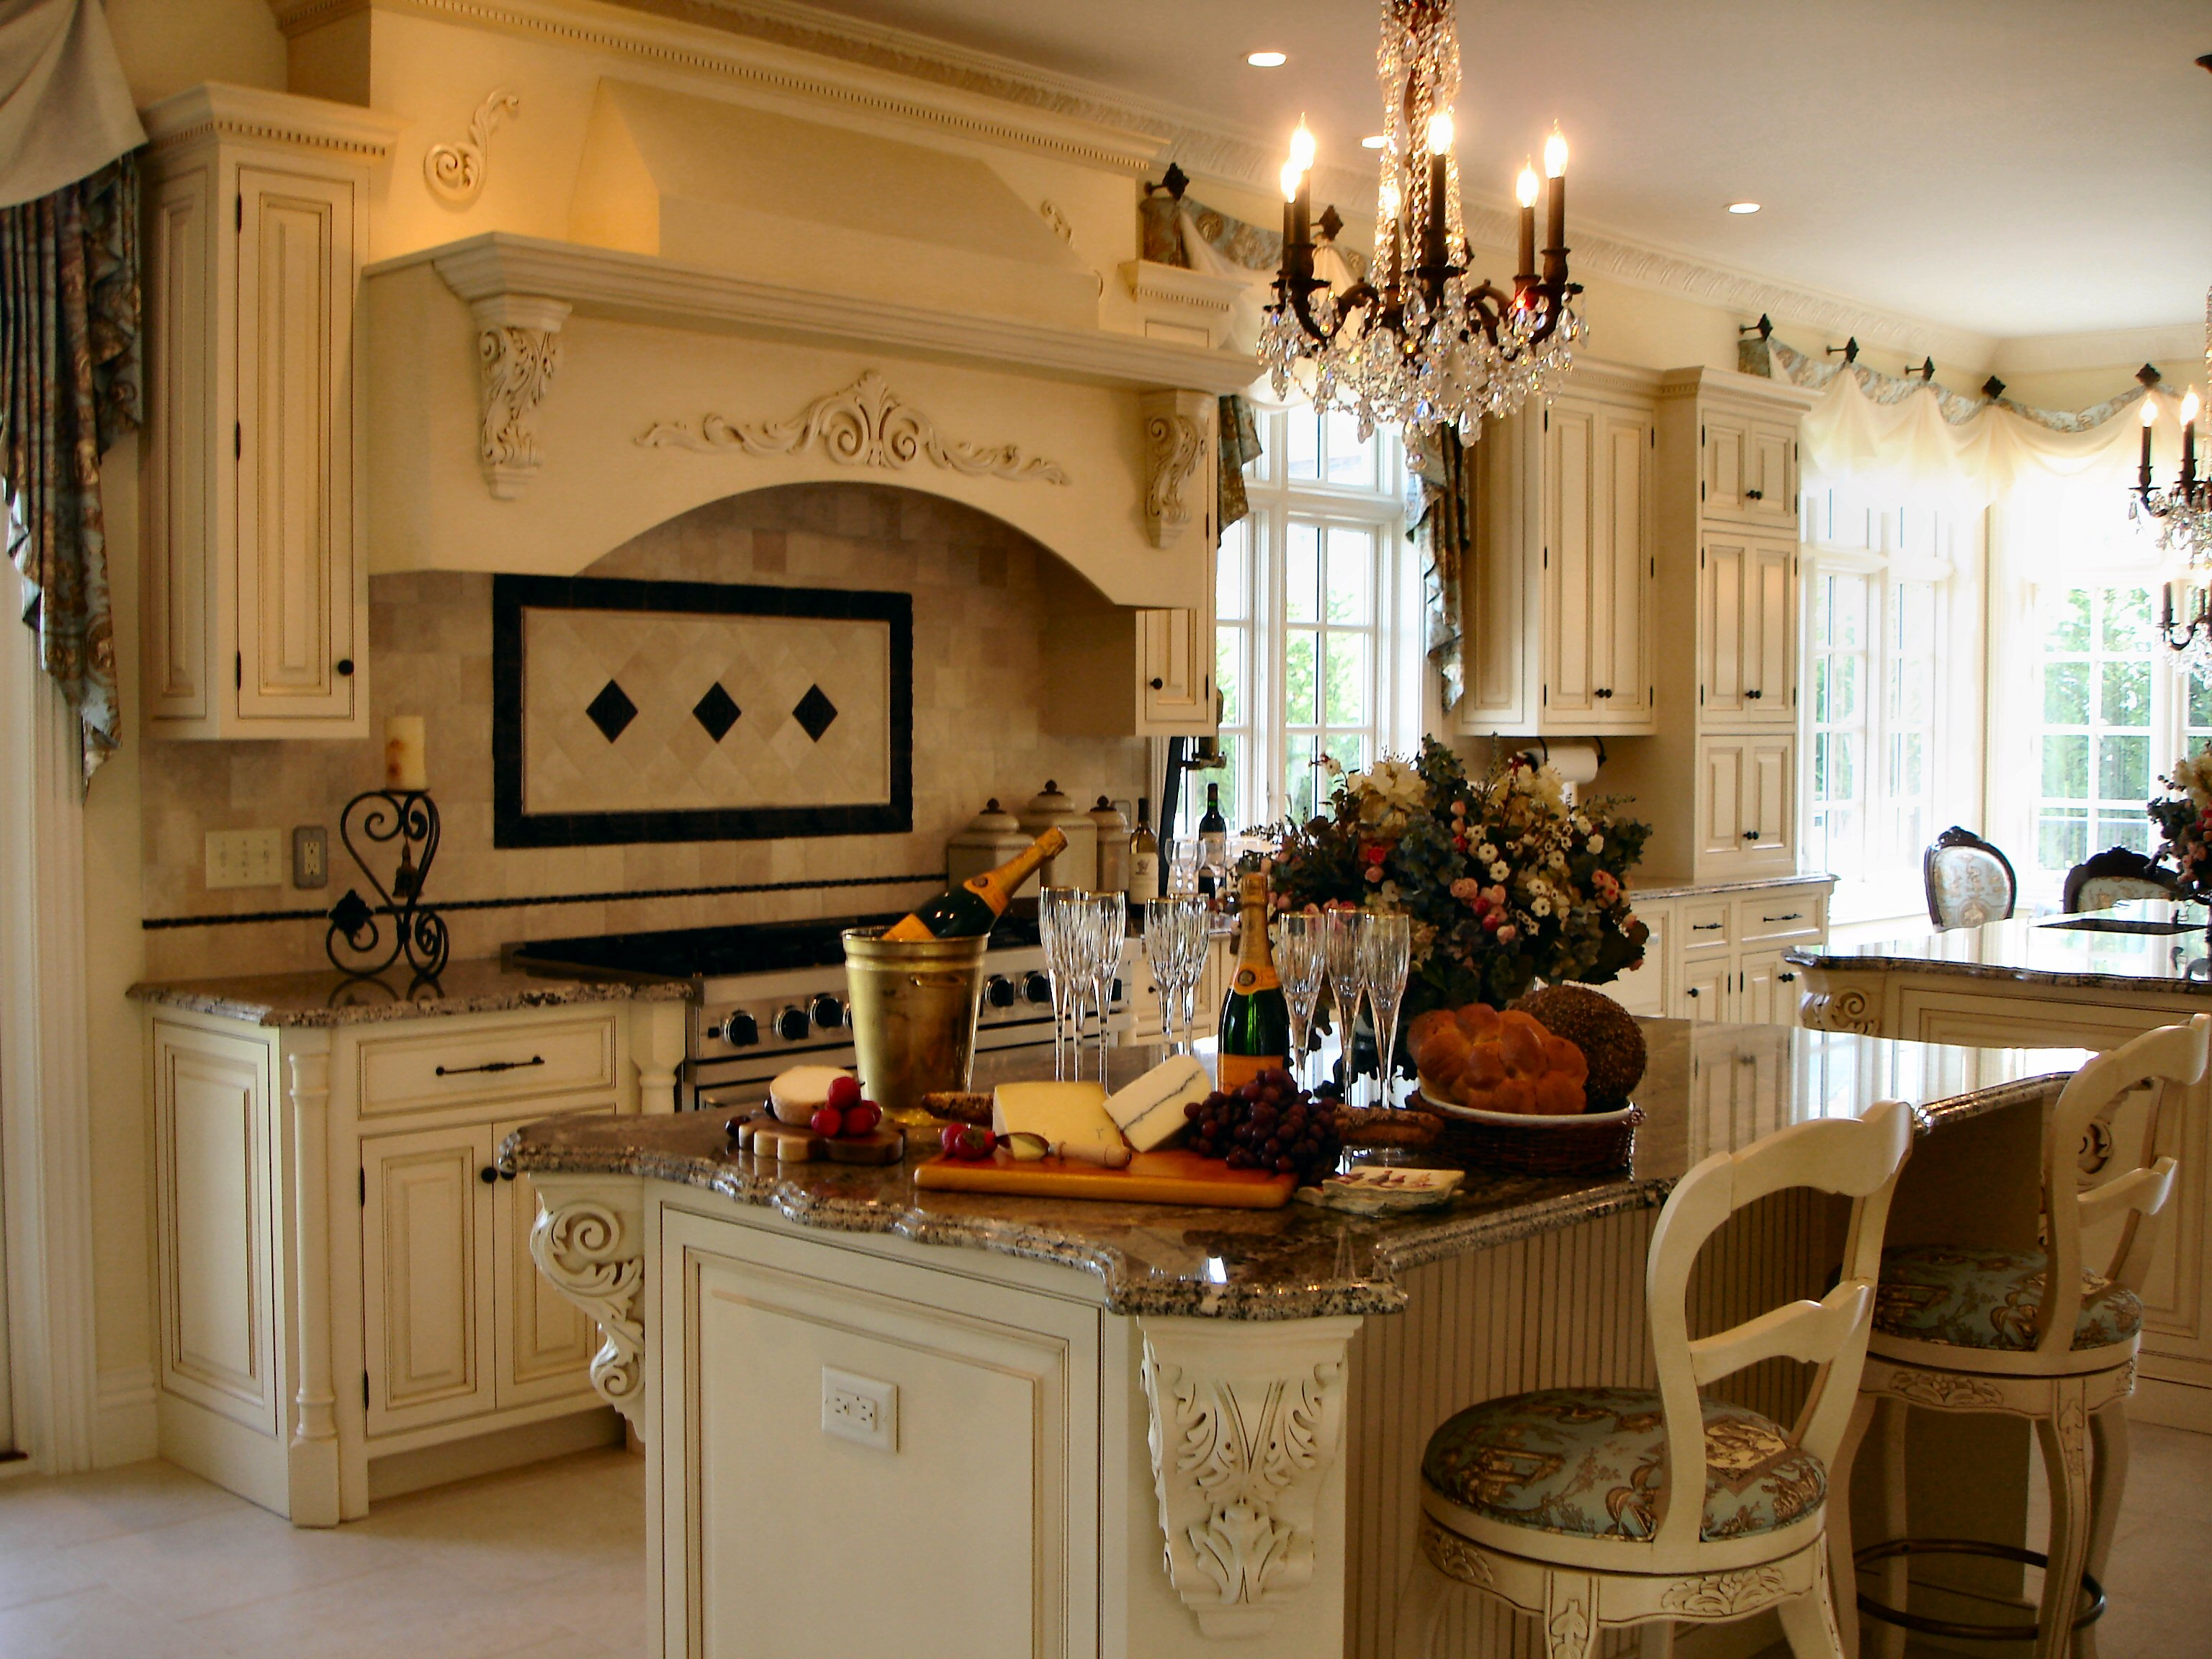 Kitchen Remodeling And Design nj kitchen design & remodeling | design build pros